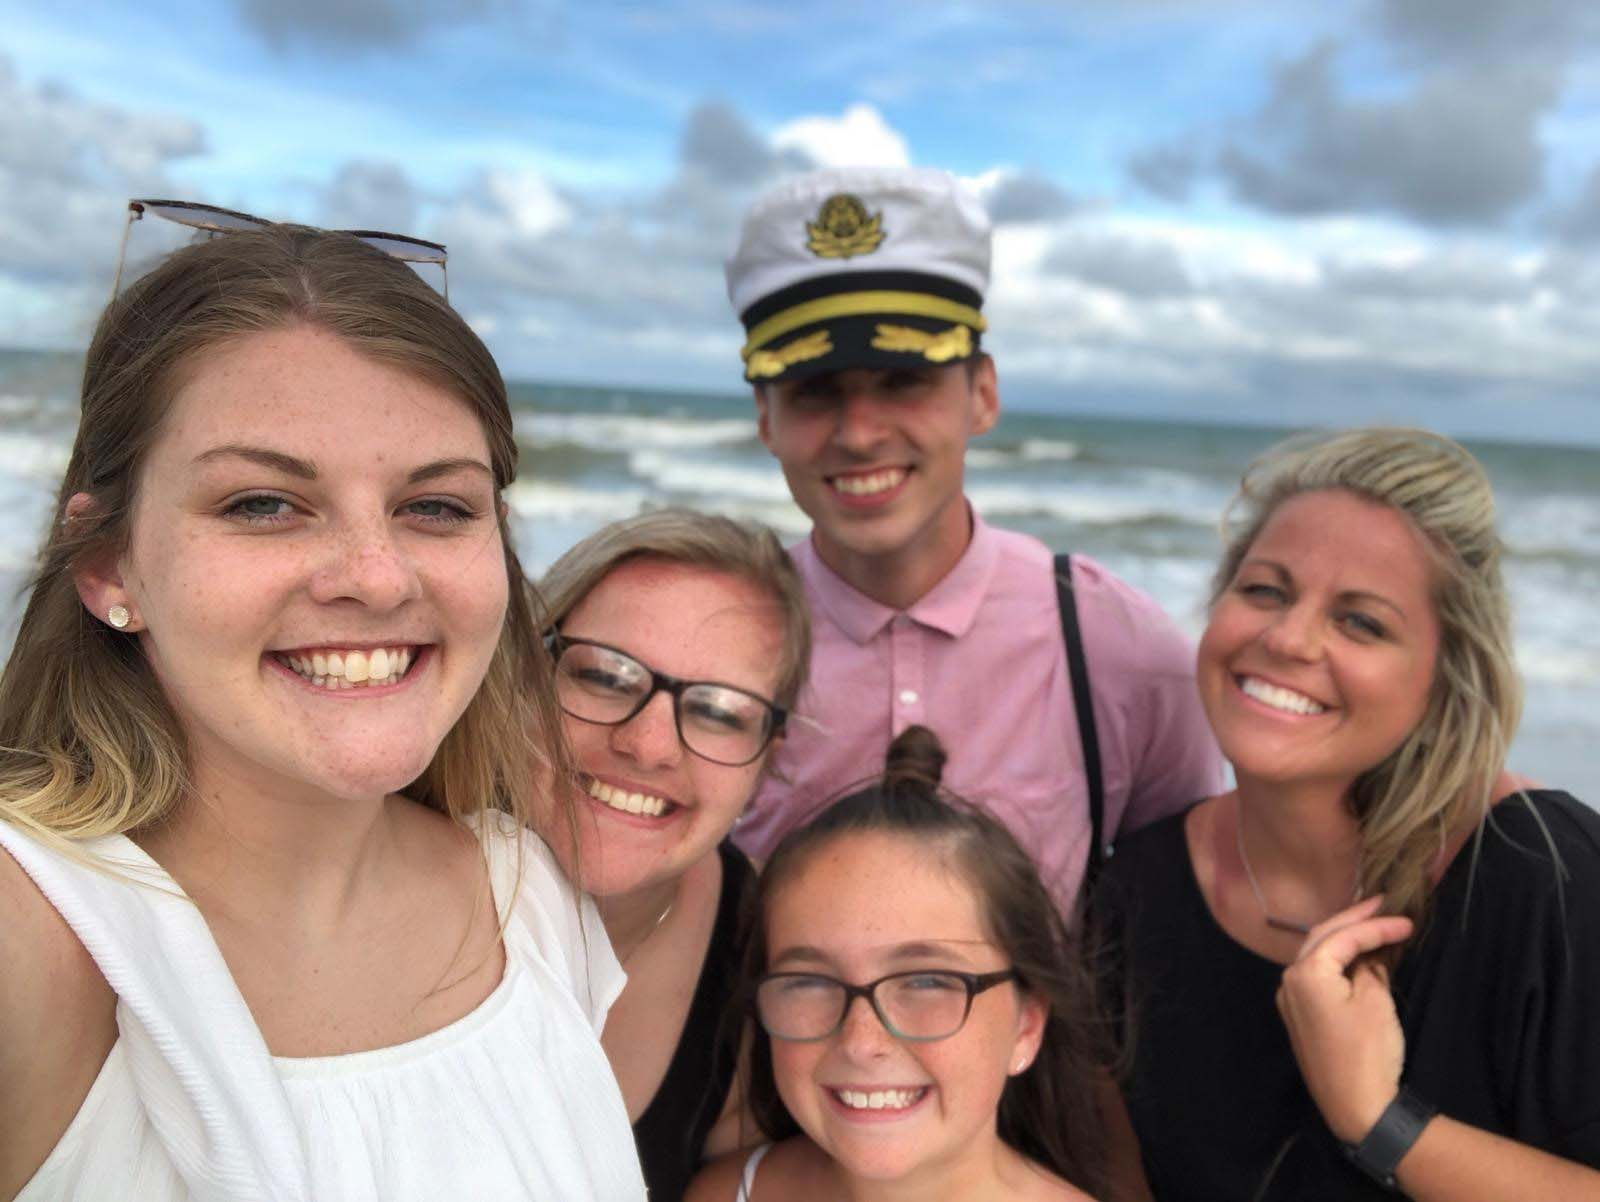 Family selfie on beach with boy in sailors hat